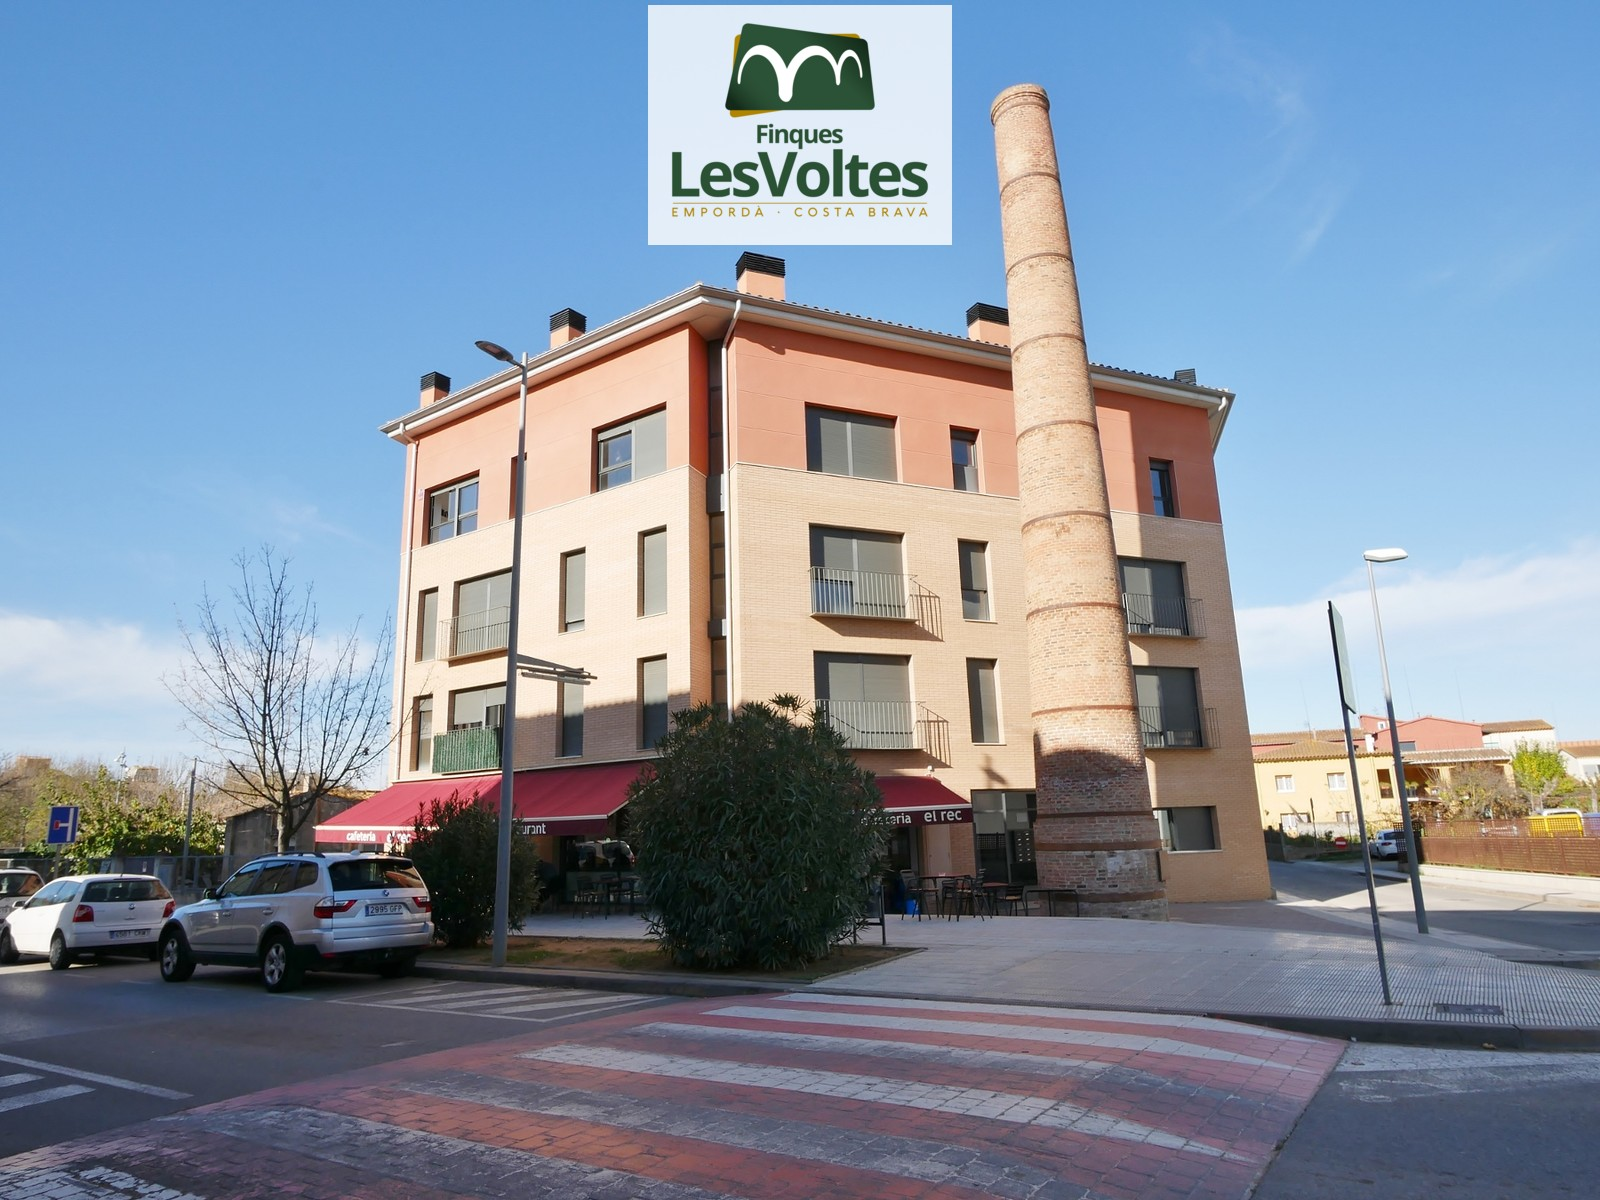 71 M2 APARTMENT ON THE FIRST FLOOR WITH ELEVATOR AND 11 M2 PARKING FOR RENT IN LA BISBAL D'EMPORDÀ.